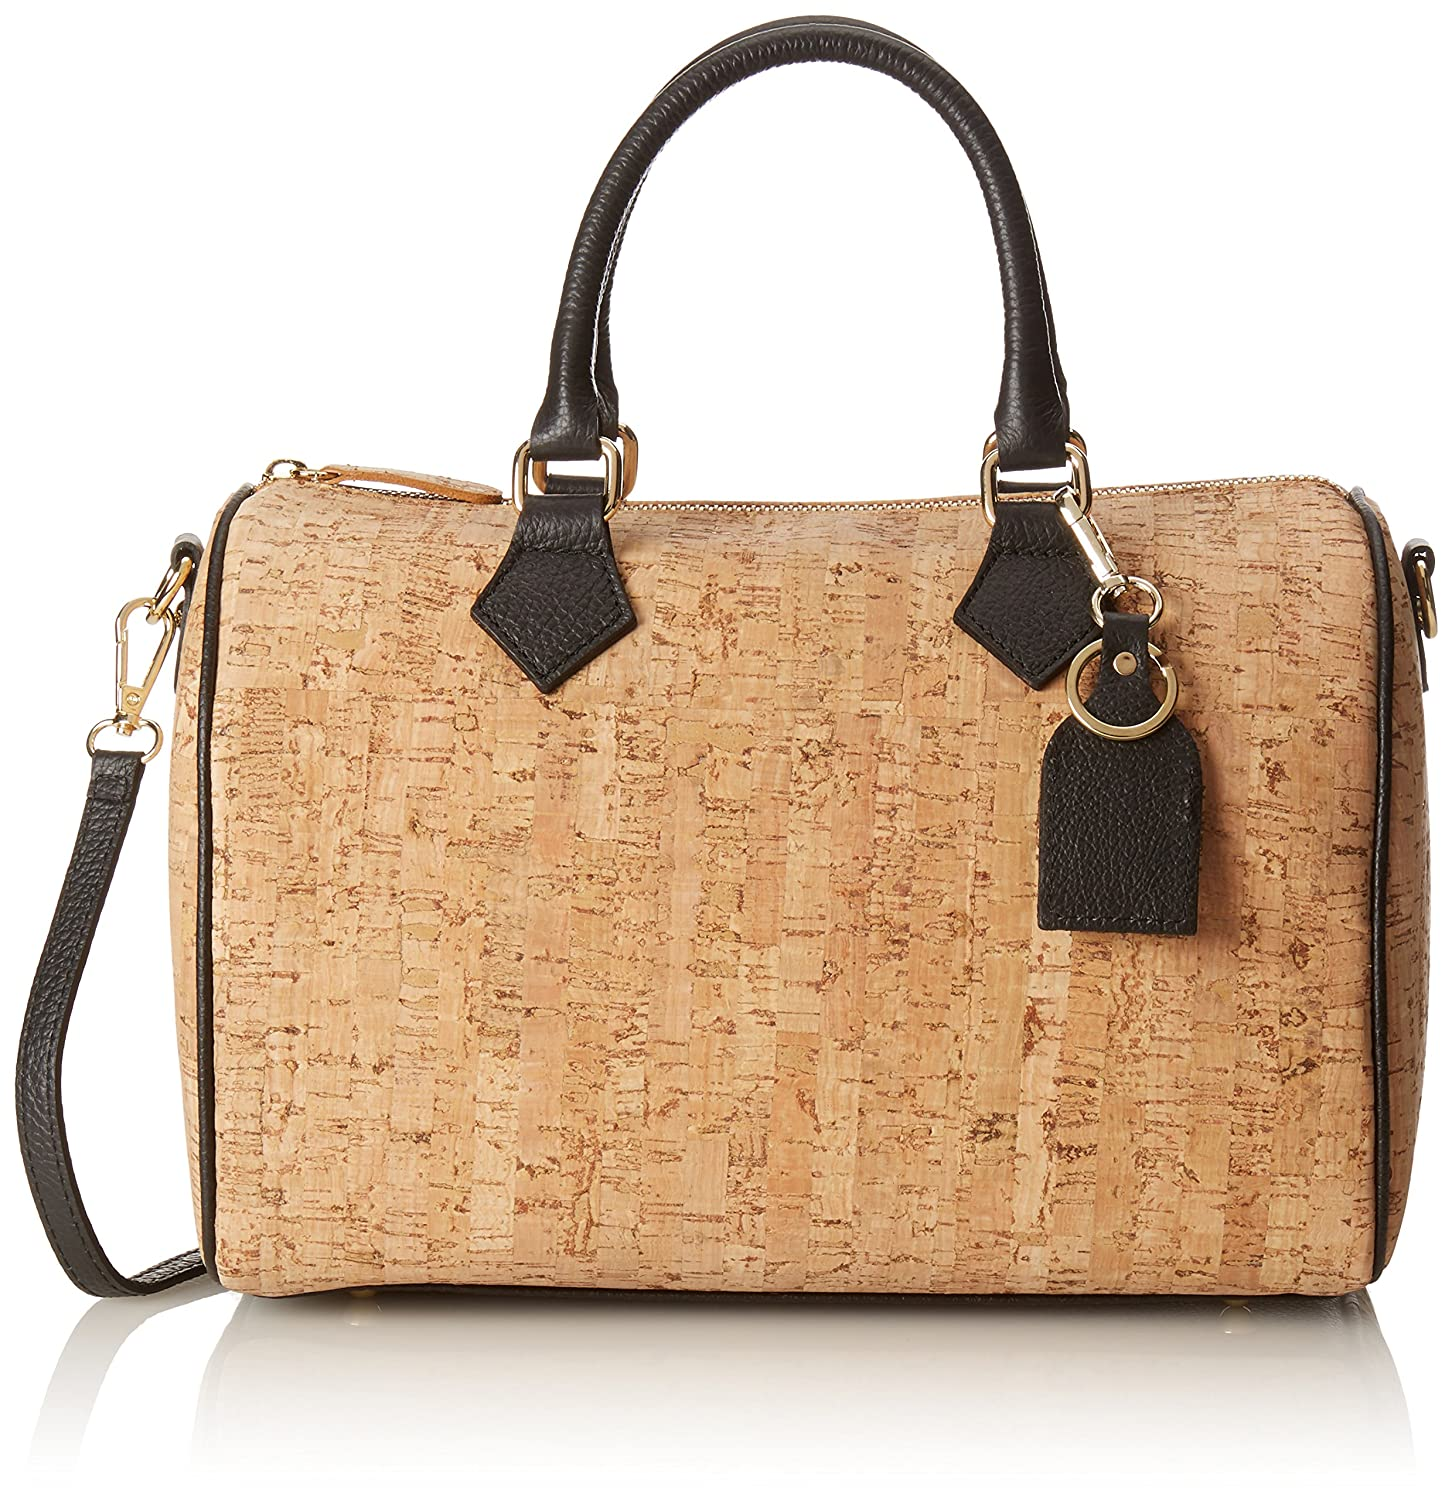 CTM Womans Handbag in genuine leather Made in Italy Cork coated - 42x30x17 Cm Chicca Tutto Moda kc4U9BGmY4